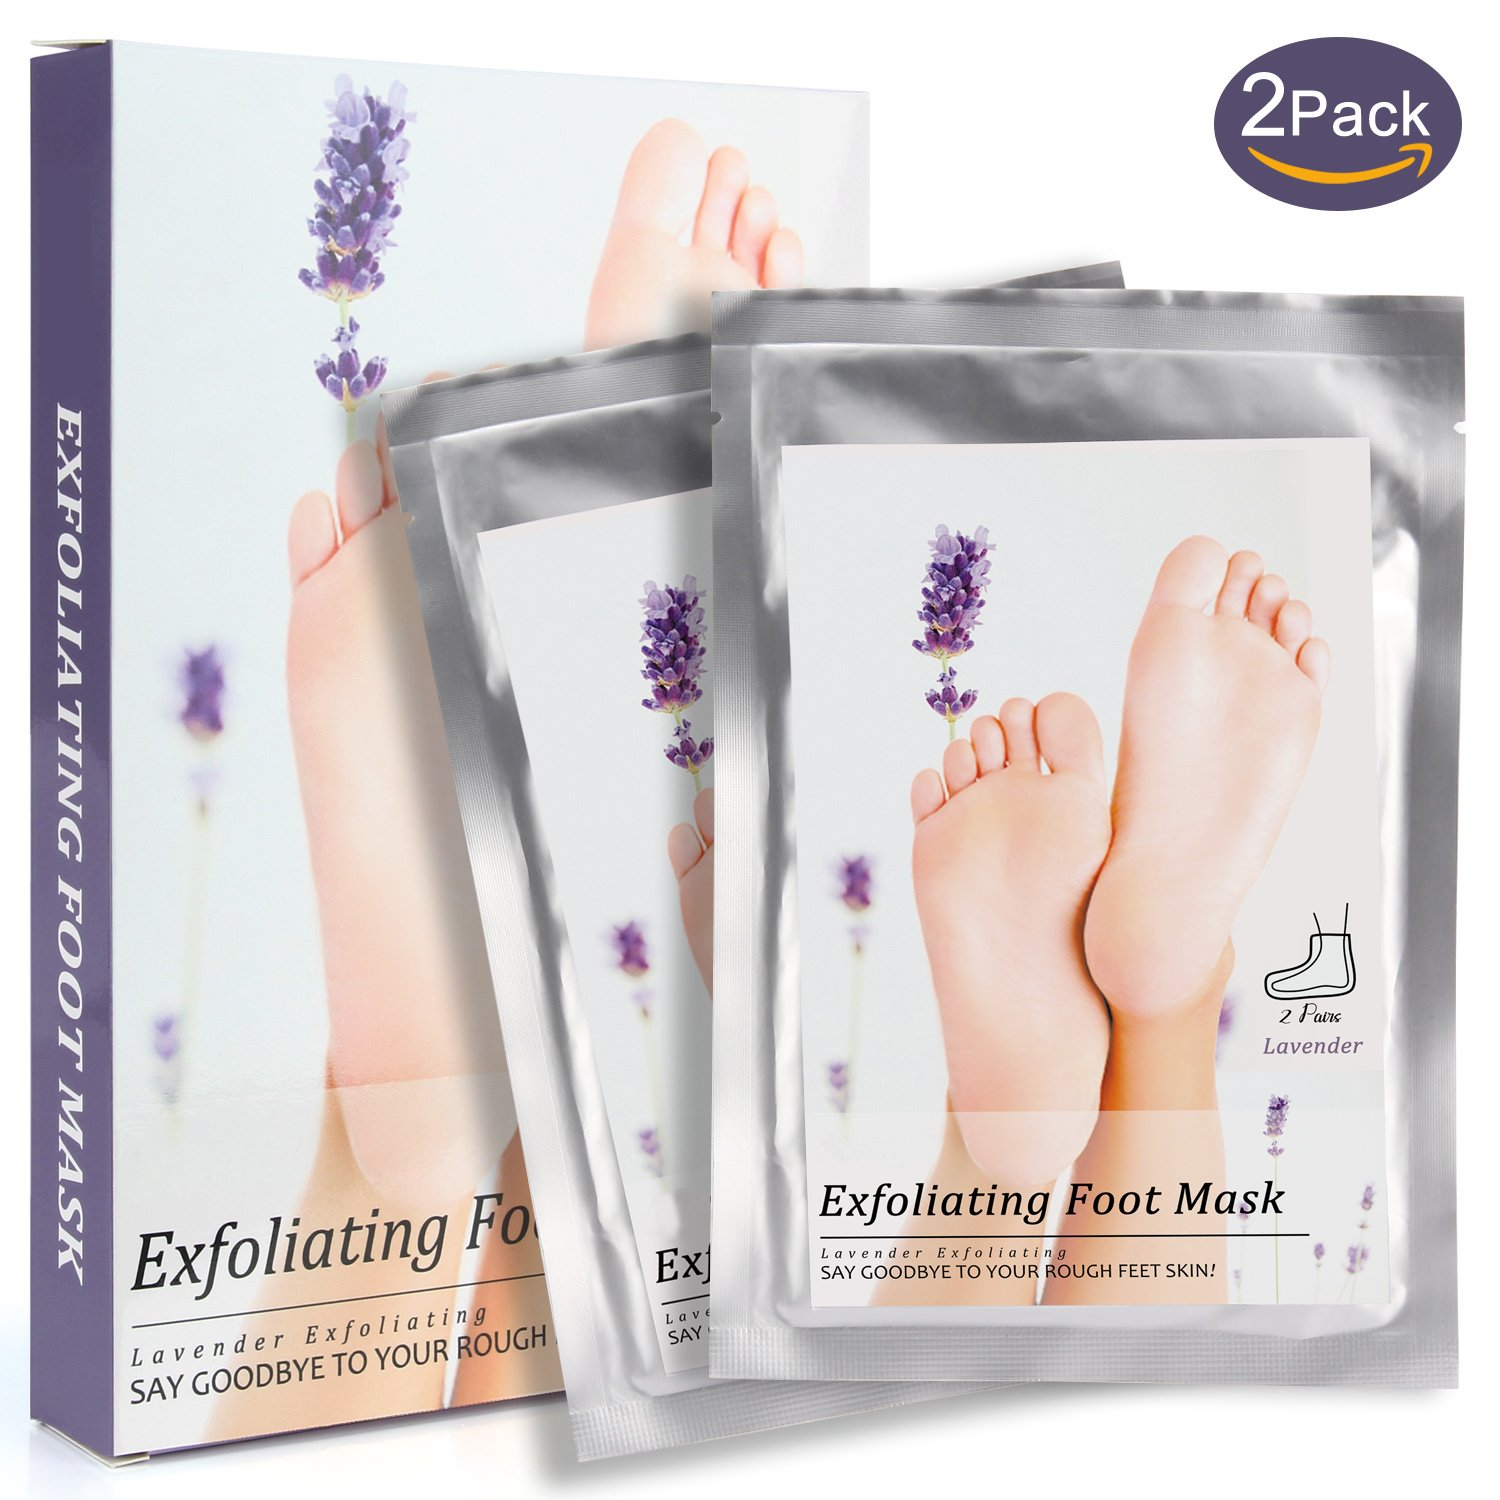 2 Pairs Foot Peel Mask, Lavender Exfoliating Foot Mask for Peeling off Calluses and Dead Skin Cells, For Man and Women